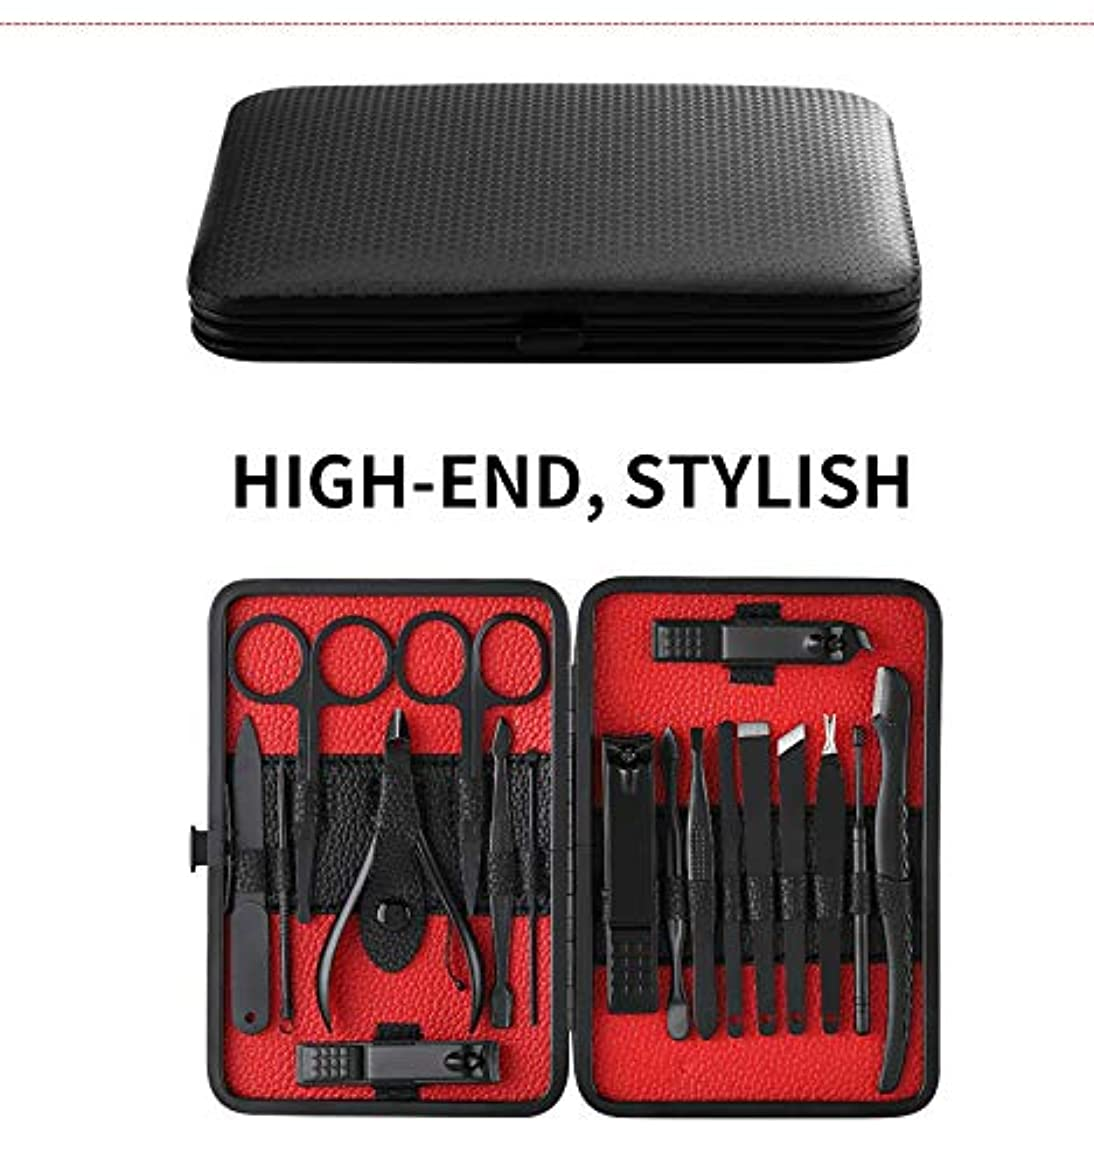 18pcs Manicure Set Nail Clippers Kit Pedicure Care Tools Black Men Grooming Kit With Black PU Leather Case for...